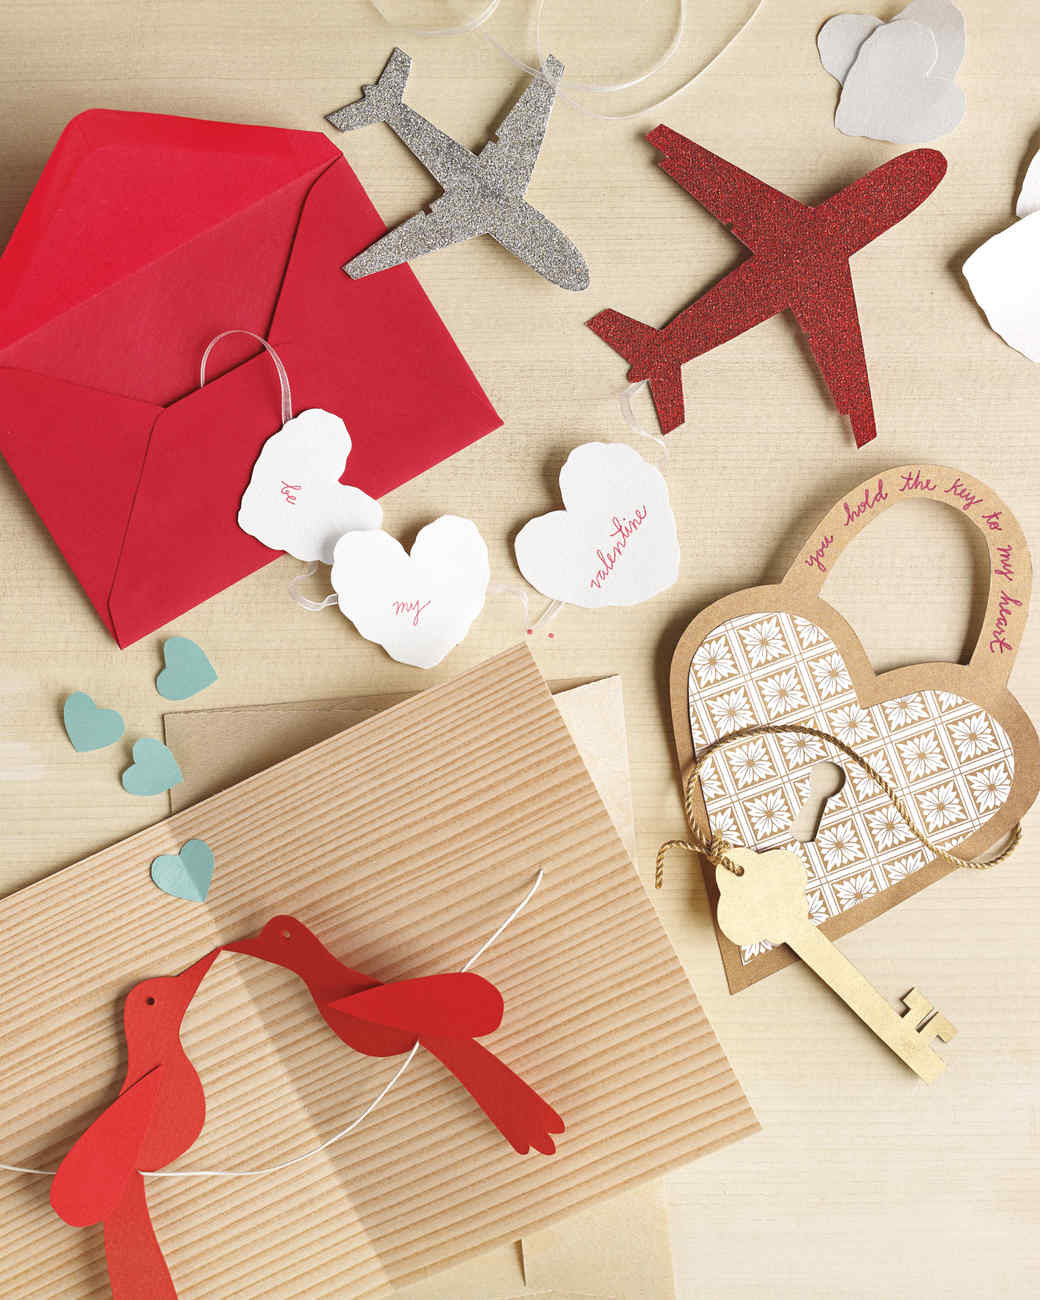 Best ideas about DIY Valentine Cards . Save or Pin 3 D Valentine s Day Cards Now.